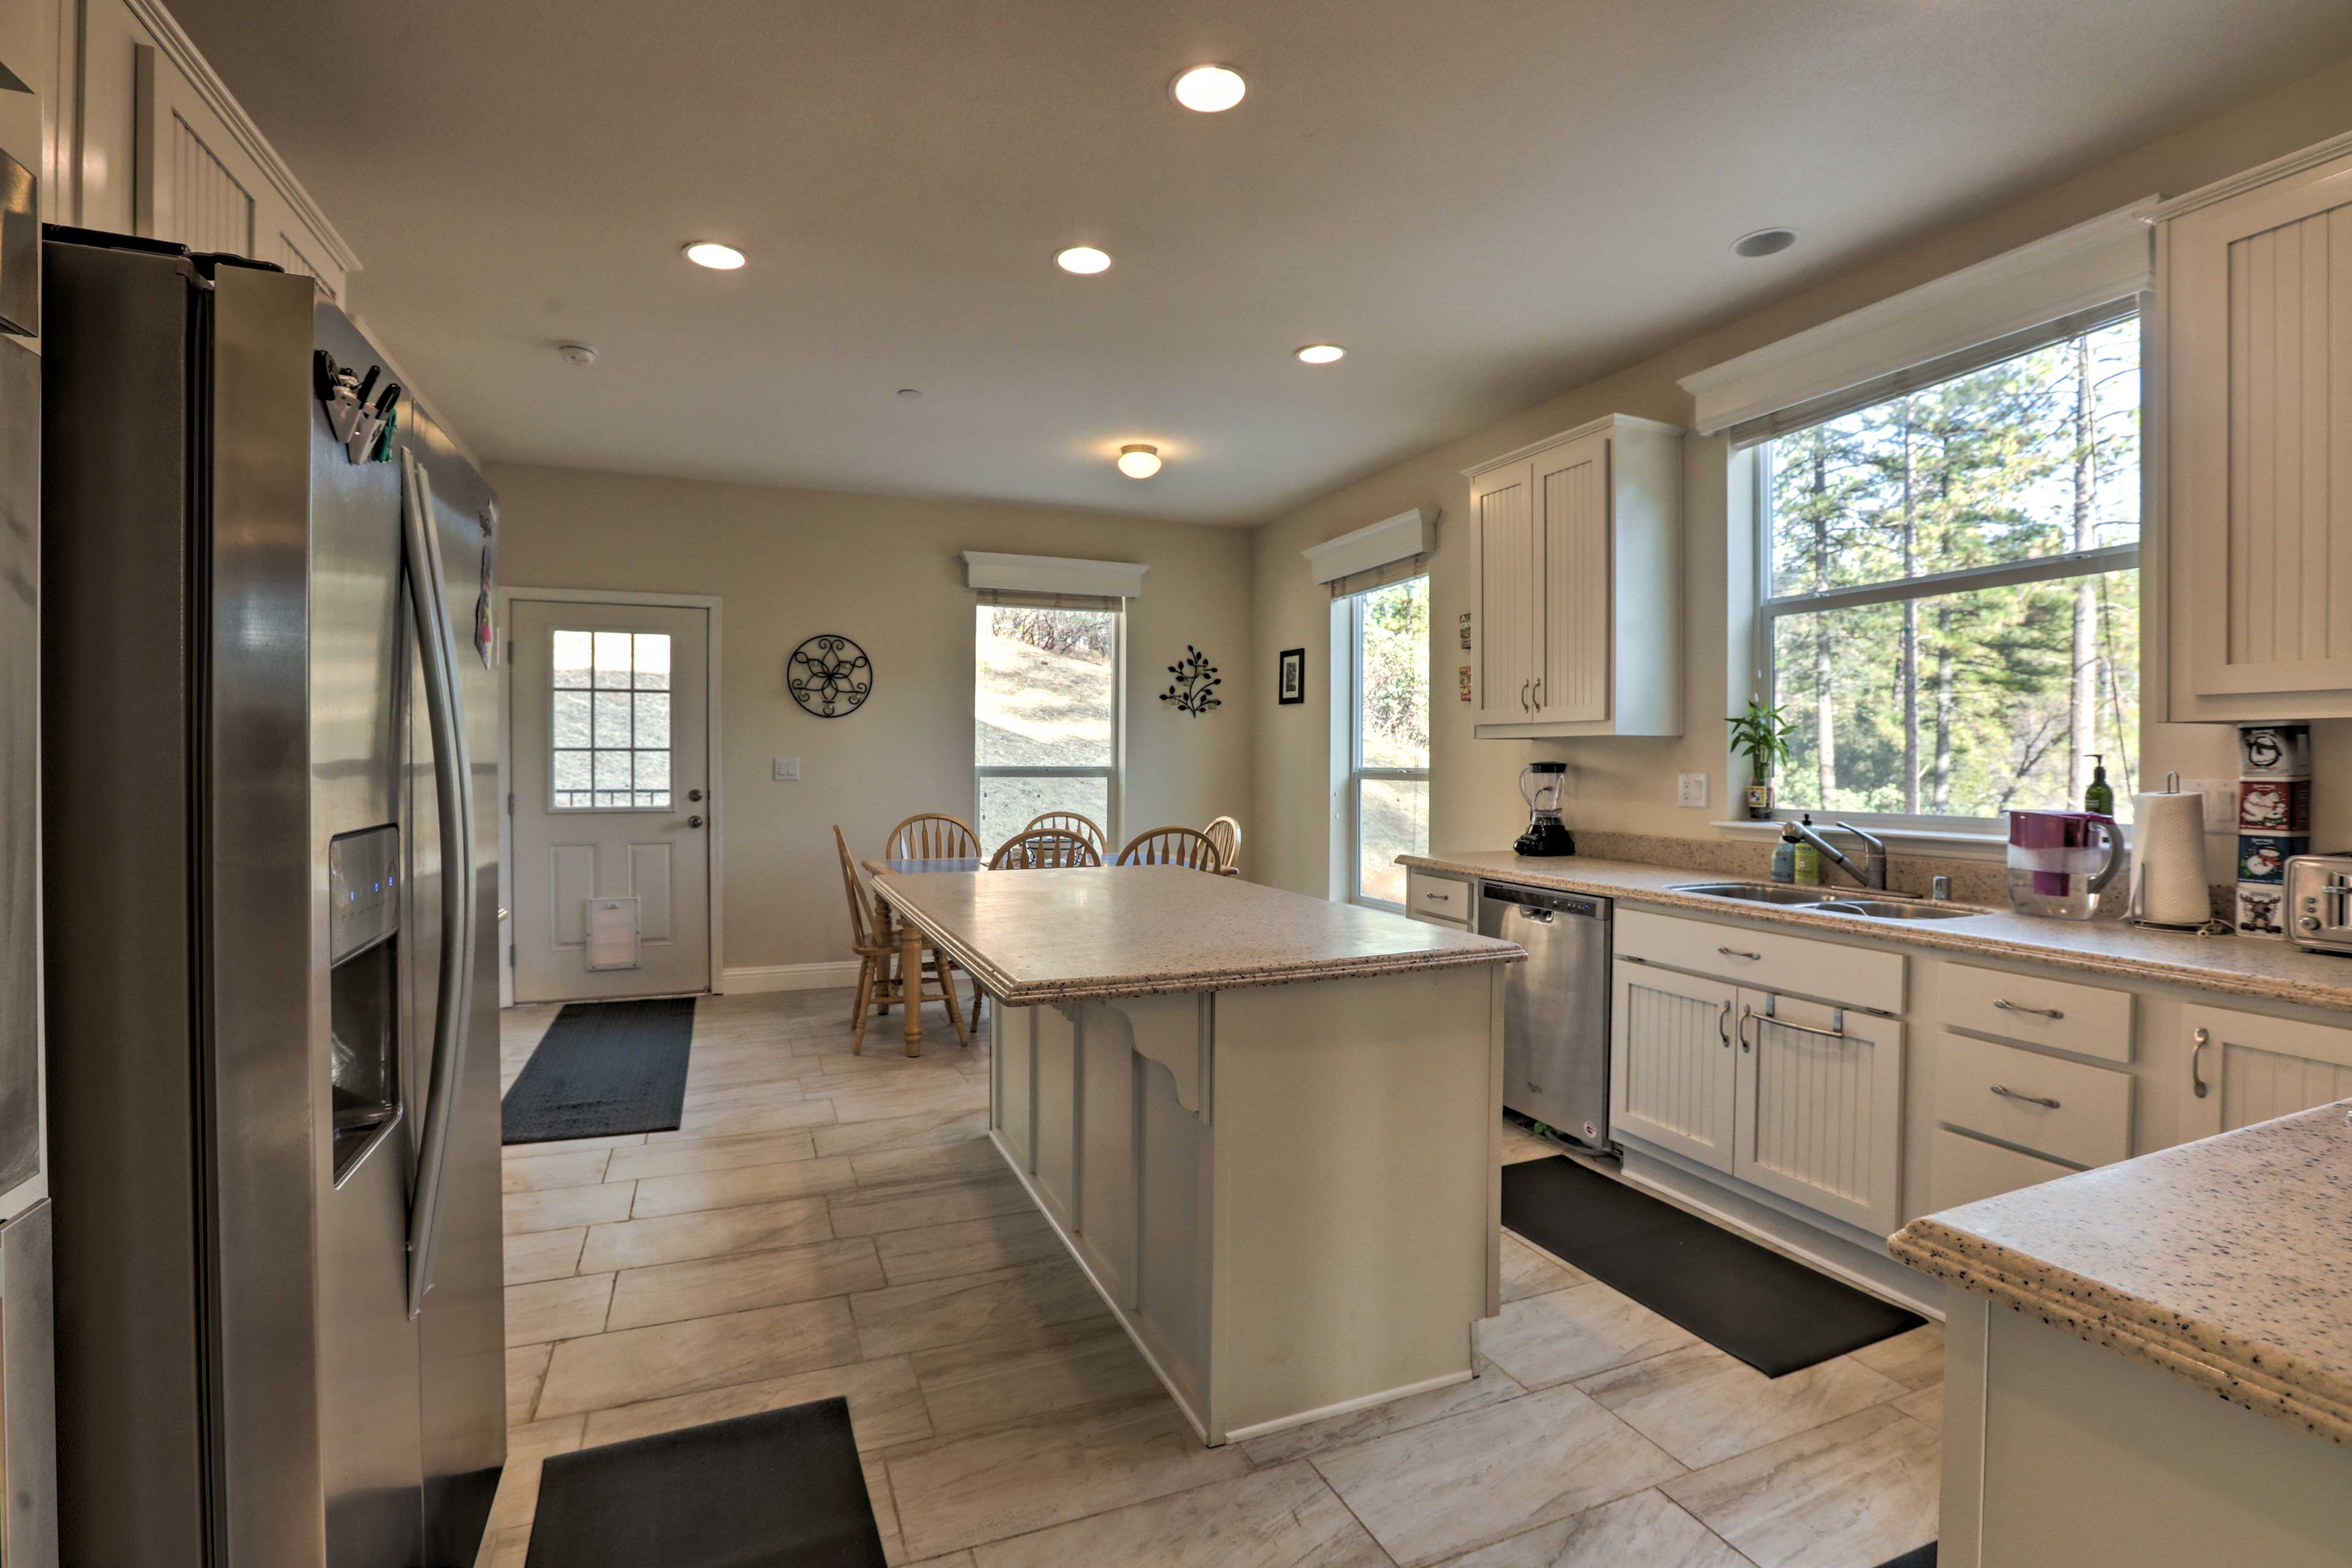 The spacious kitchen is a chef's dream!